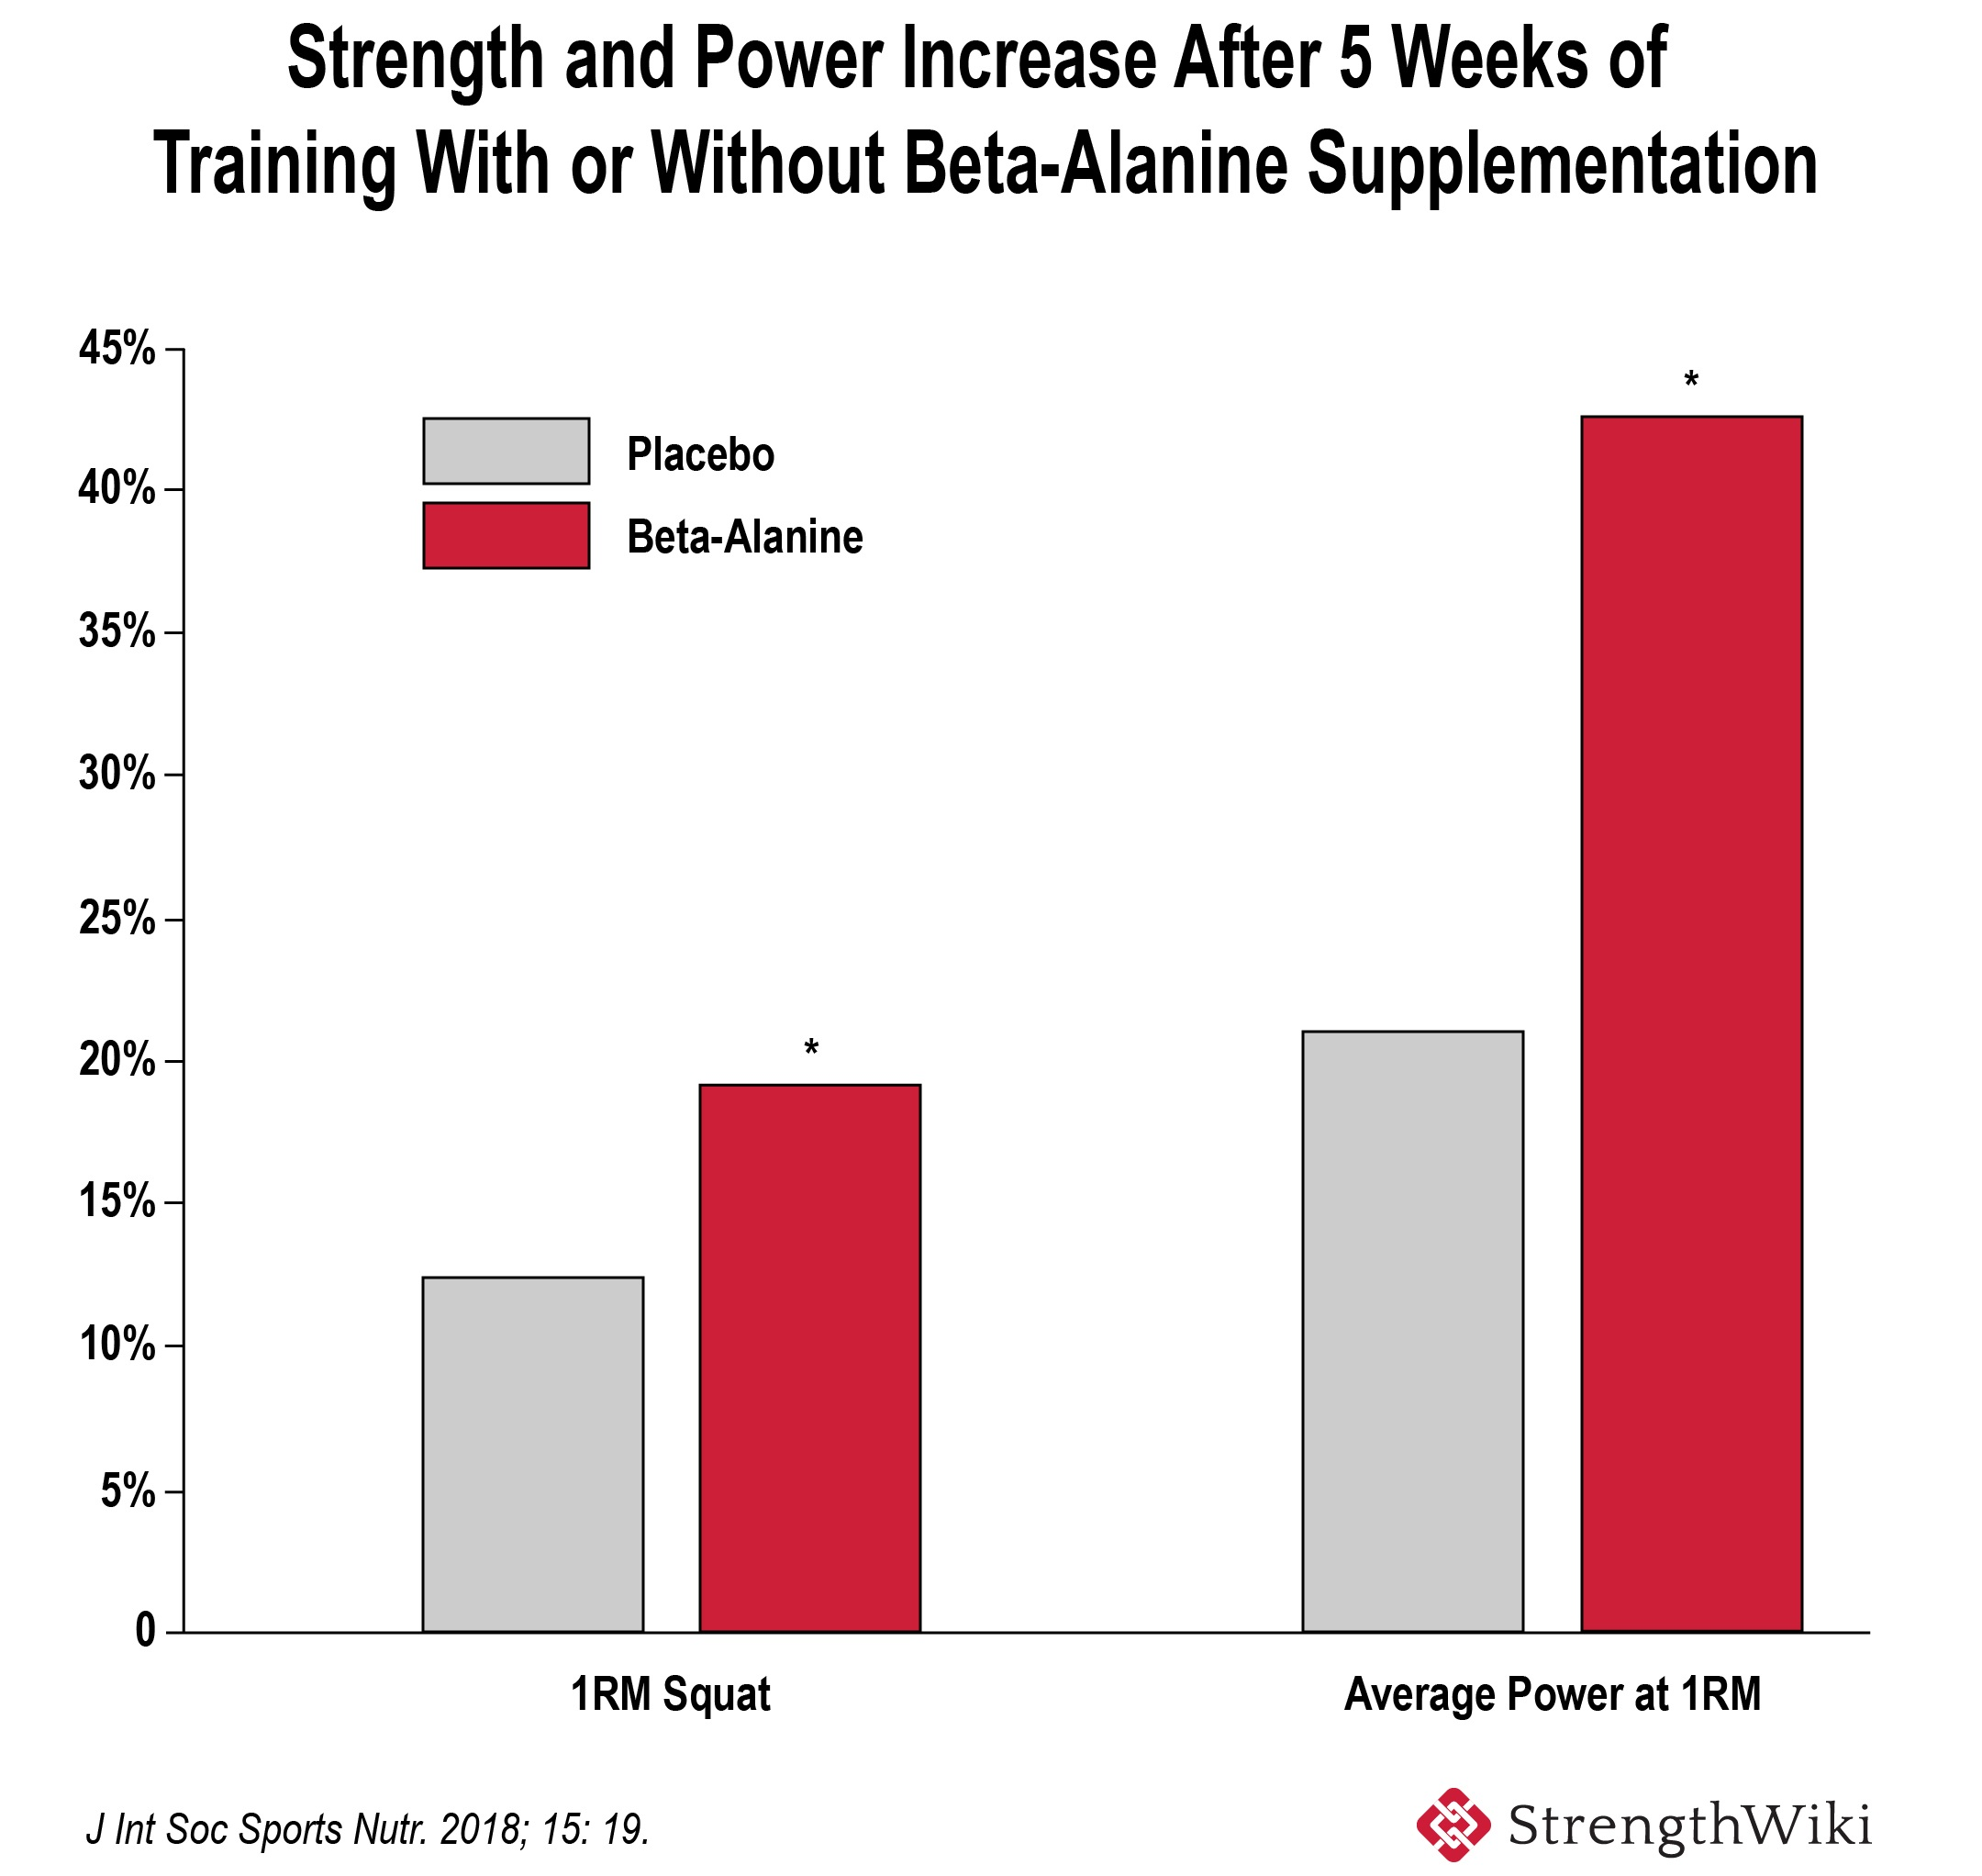 Strength and power increase after beta-alanine